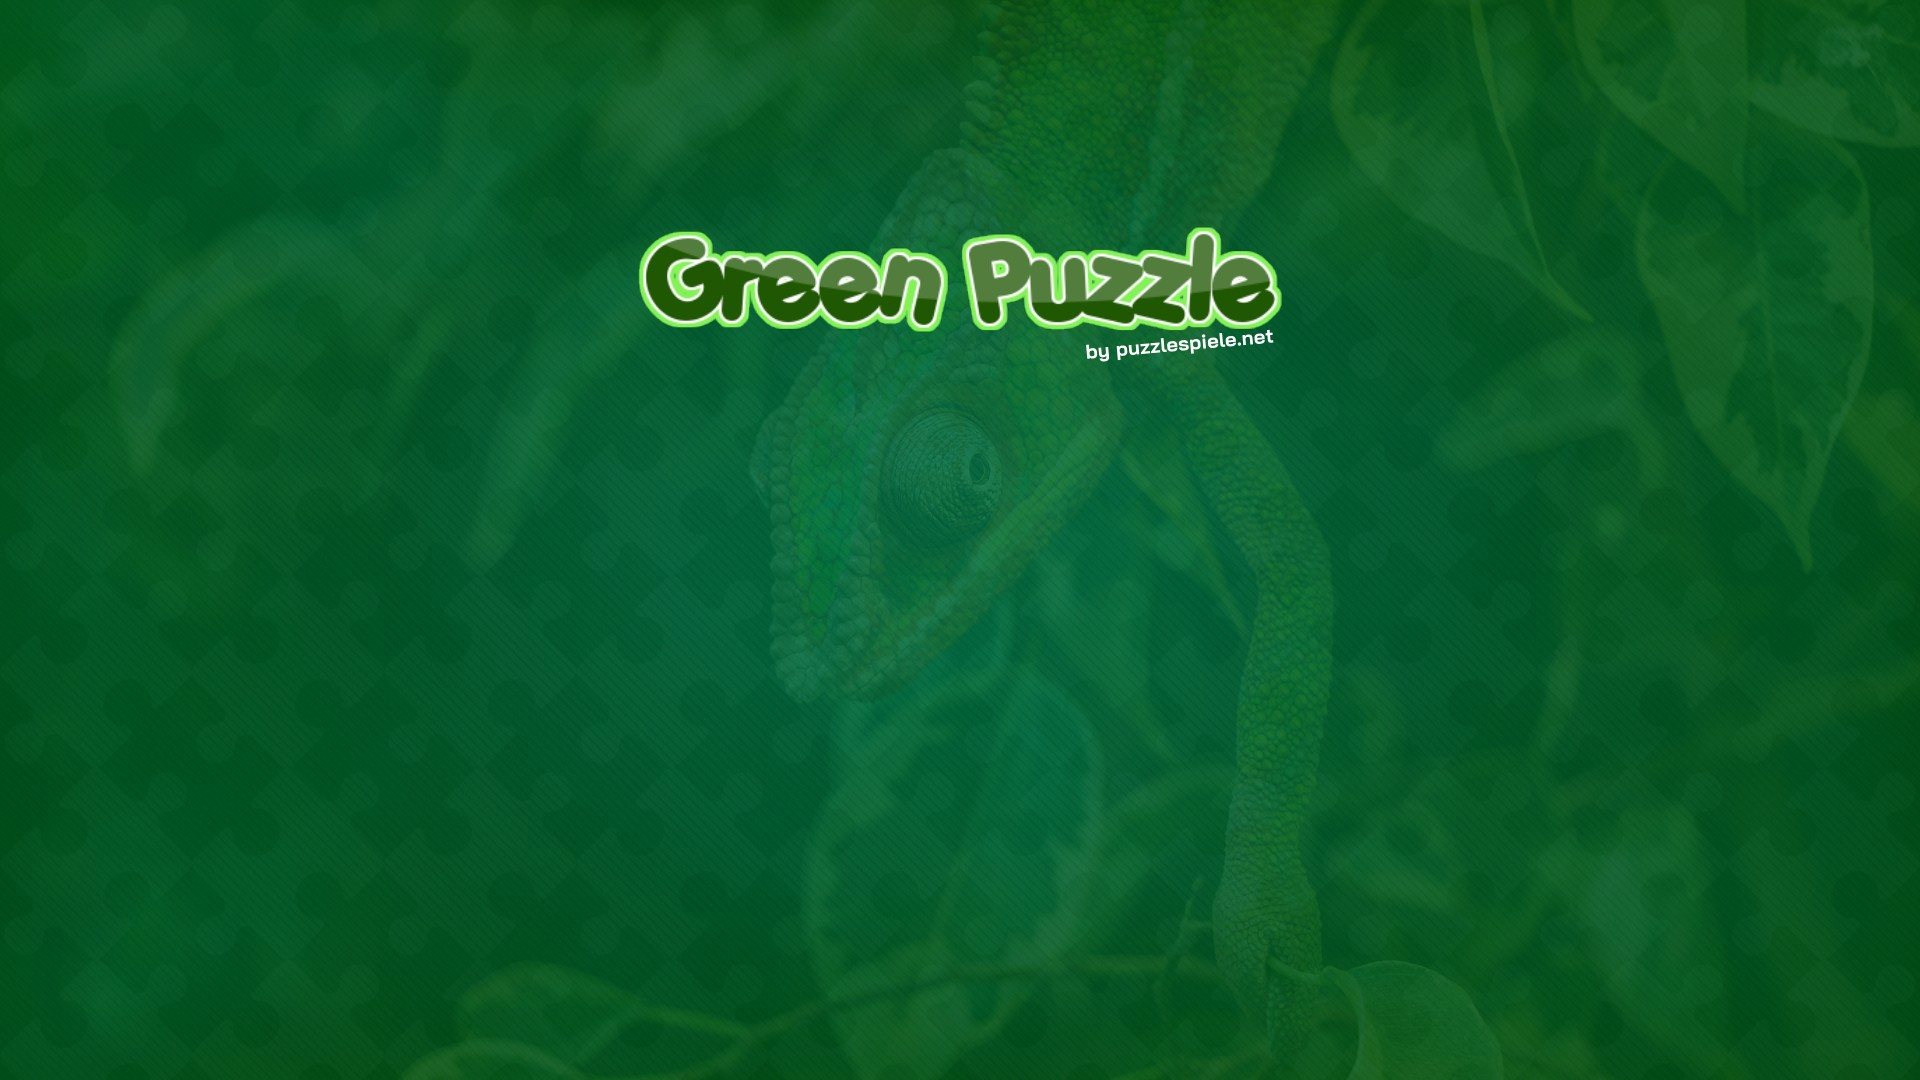 Image Green Puzzle